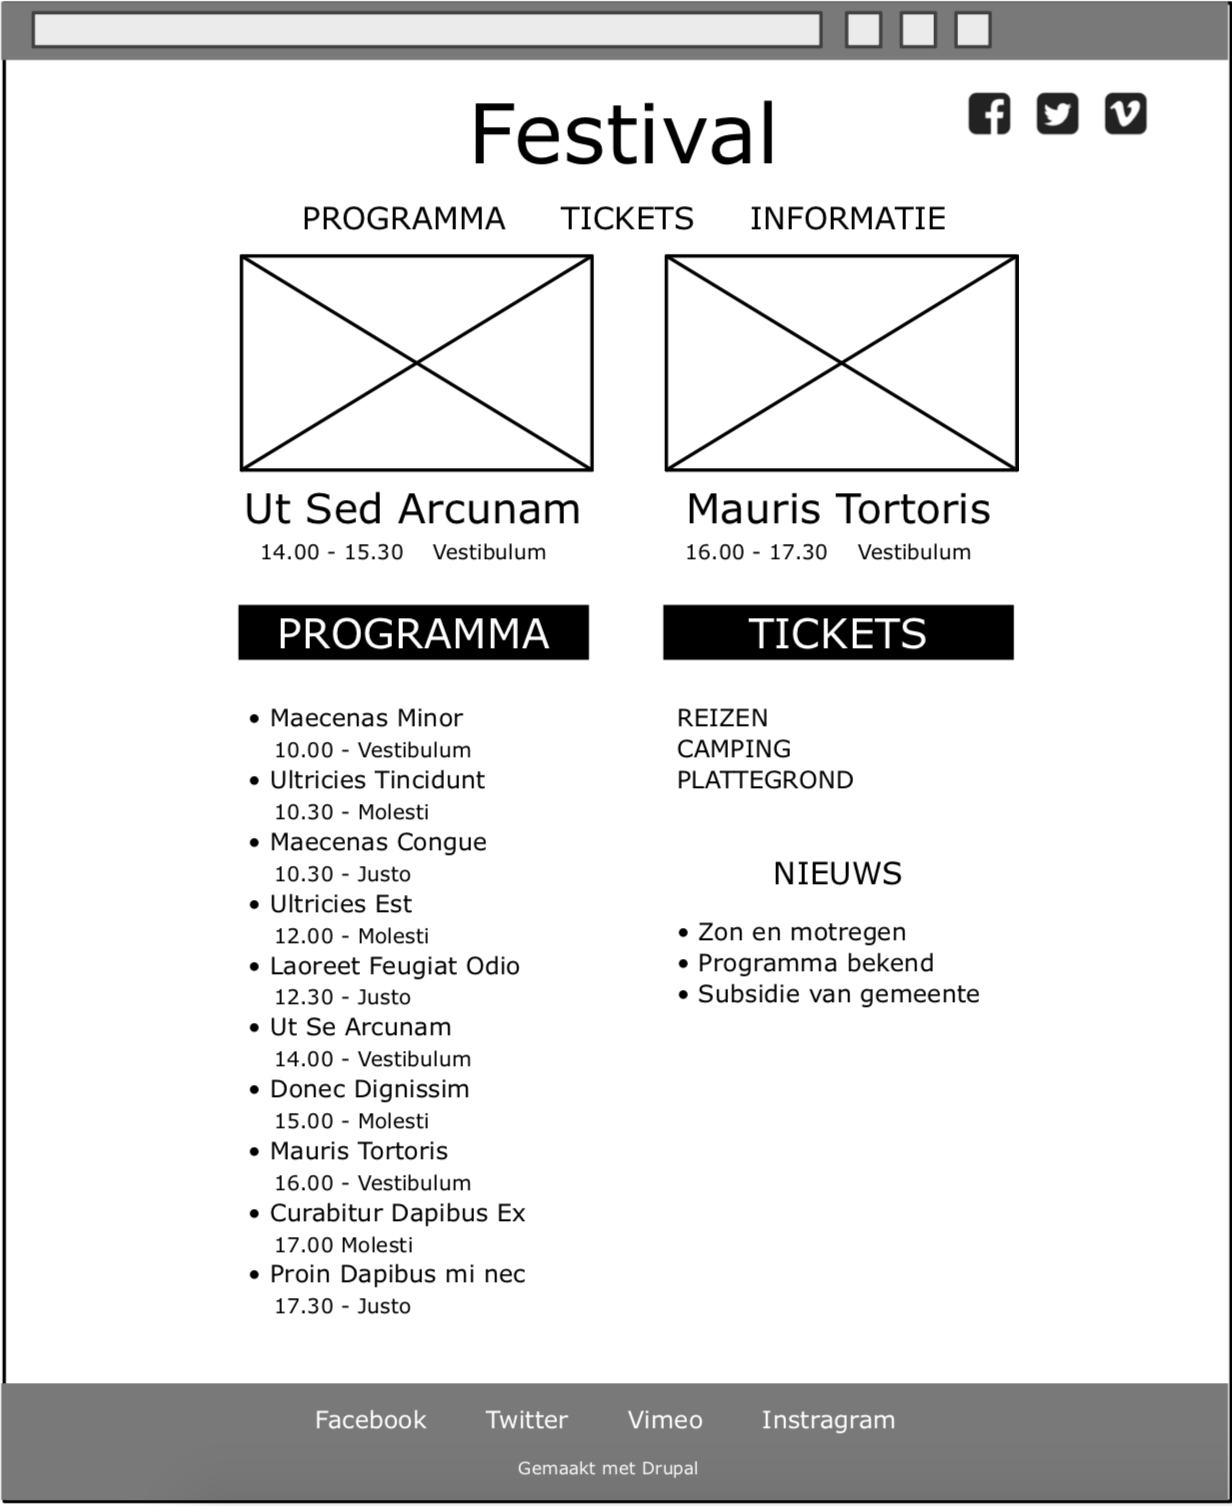 Wireframe of website page